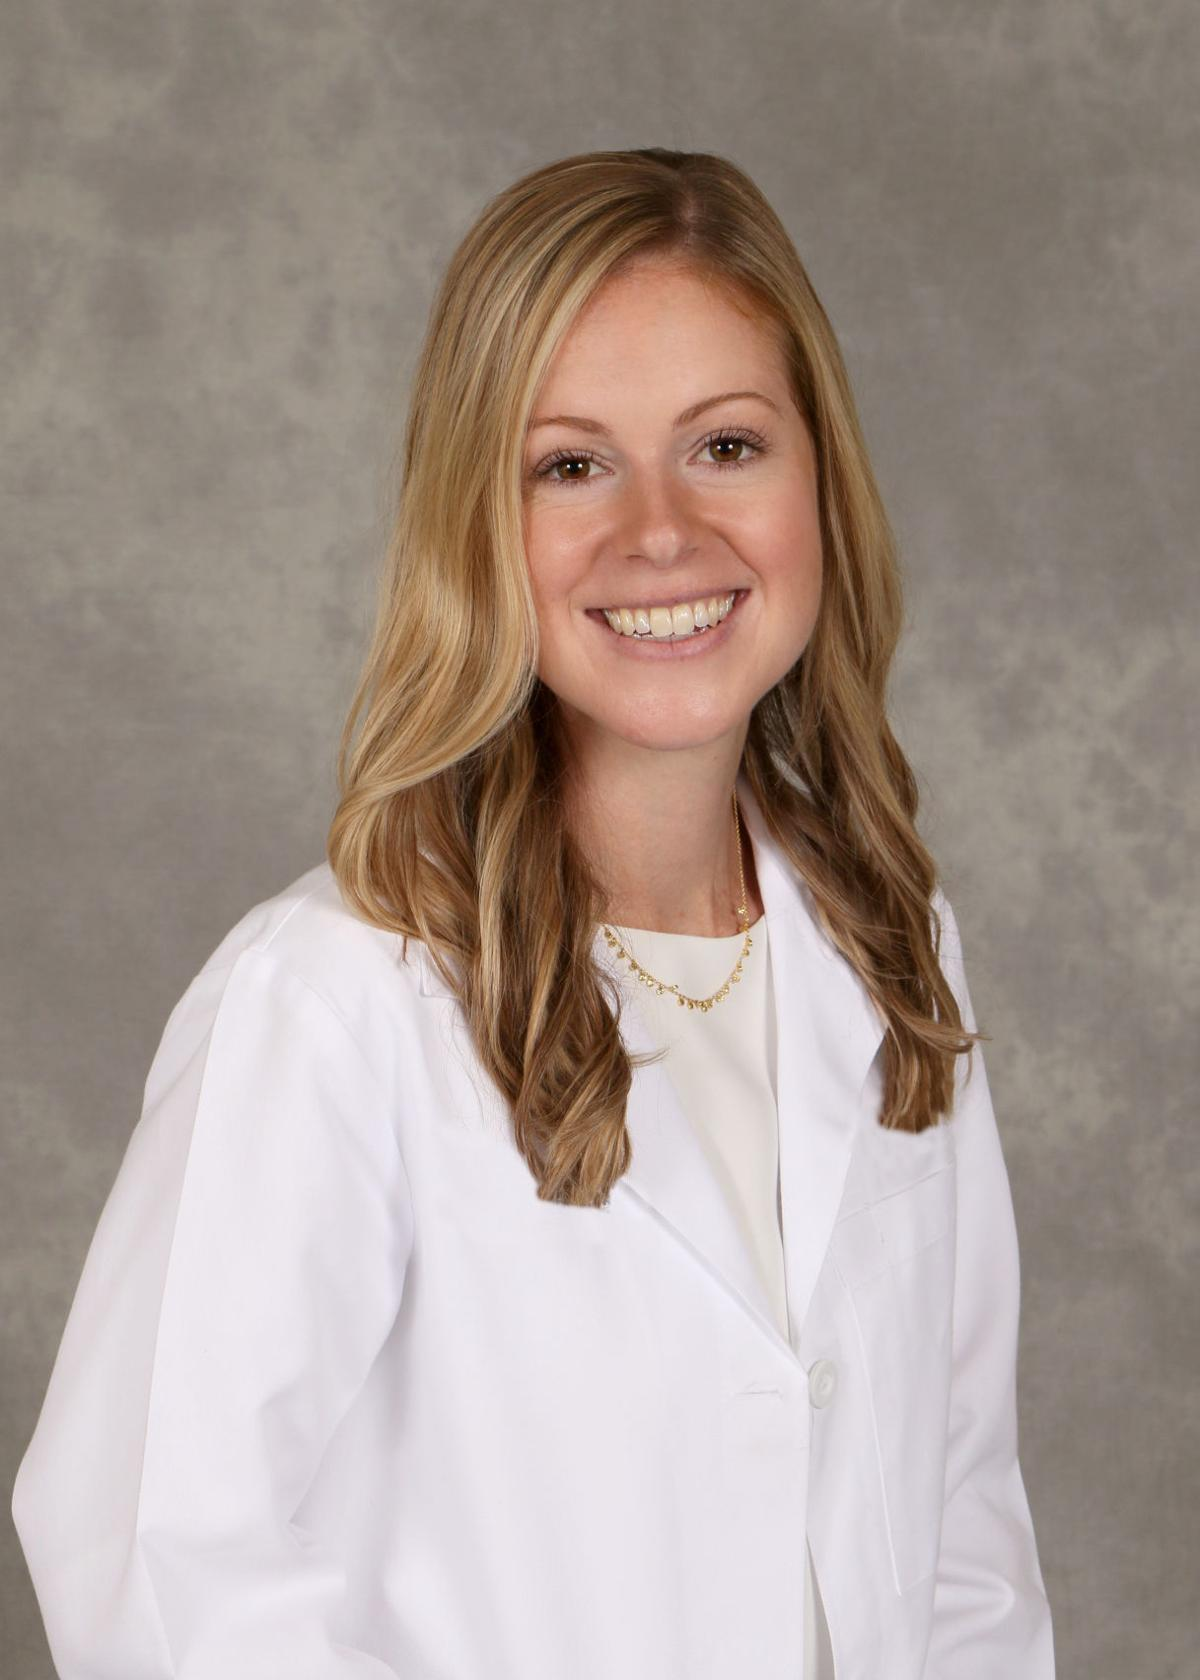 Oswego Health welcomes 2 new primary care physicians